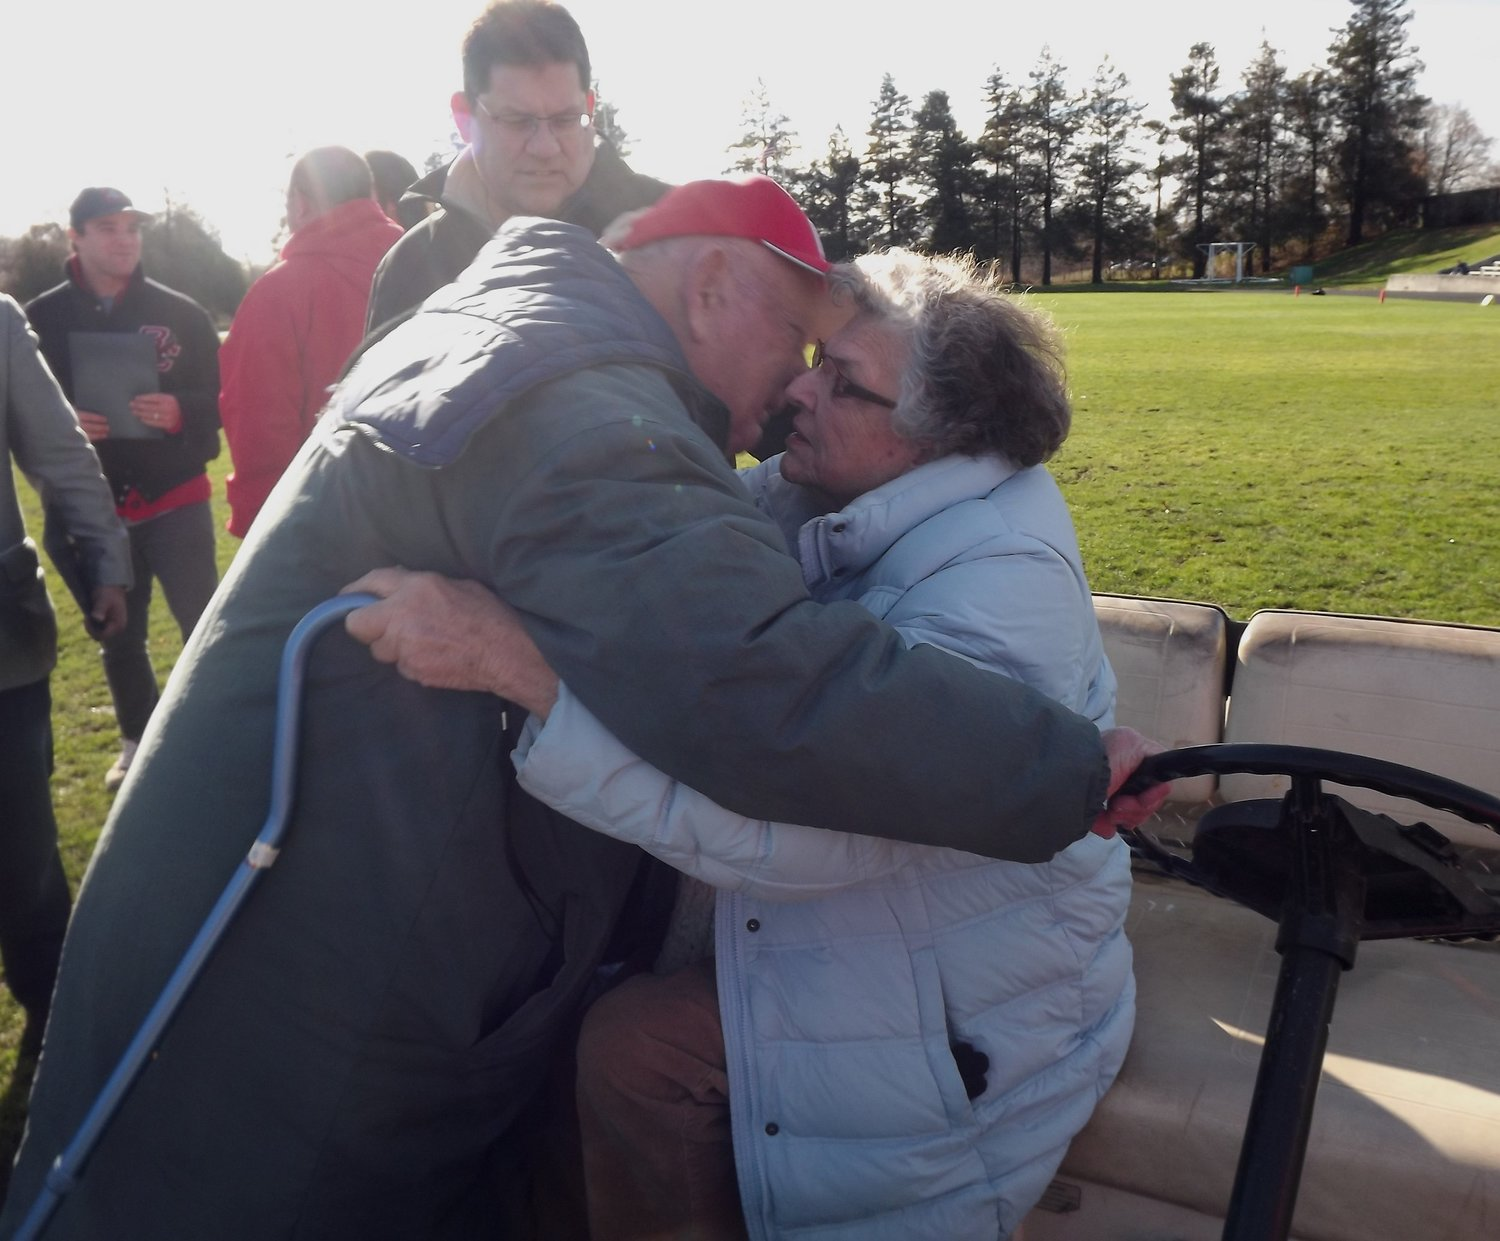 As the sun shone brightly down on Pierce Stadium, Bill Stringfellow tells whispers I love you, to wife Sheila. Pierce Stadium honored them Thanksgiving Day 2014.